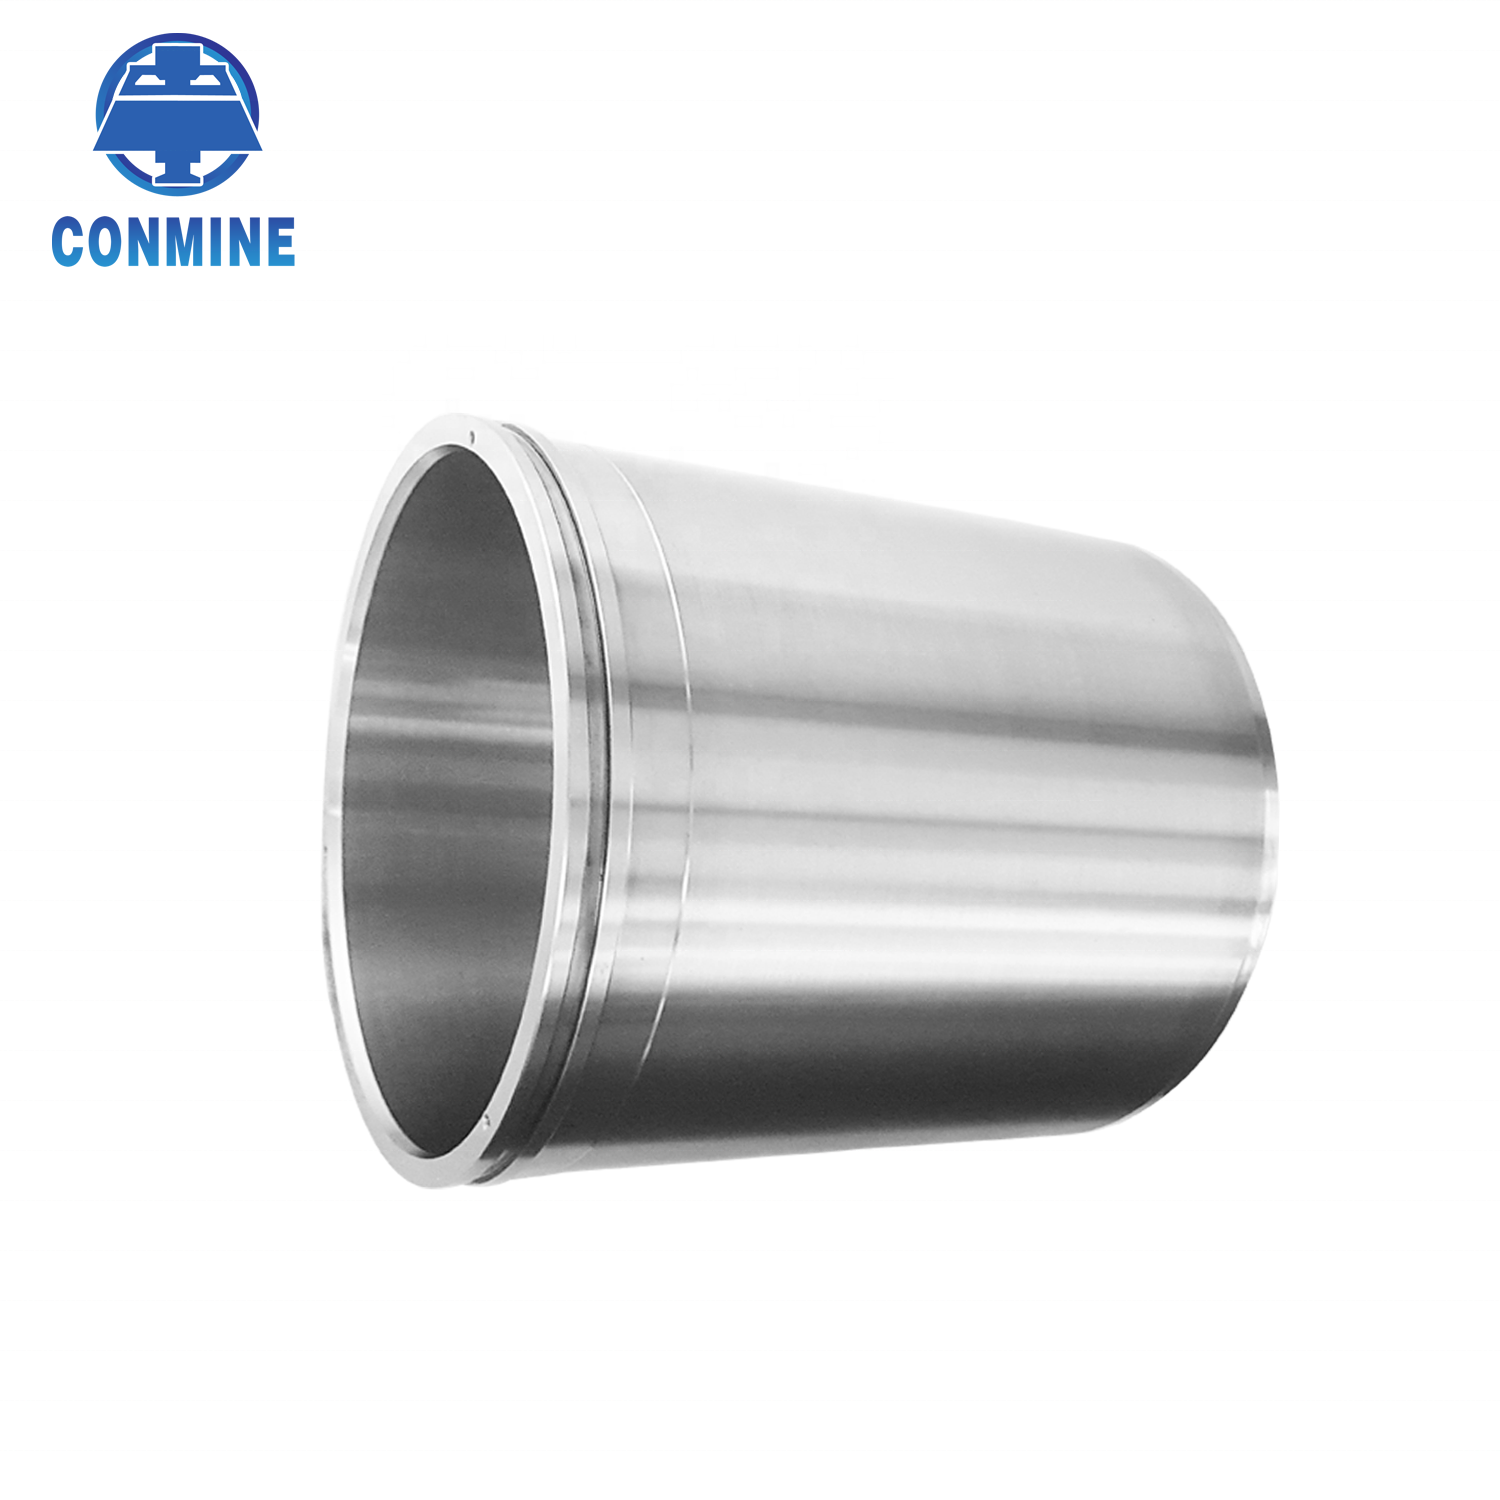 Stone crusher parts Cylinder bushing for CH420 CS420 H2800 S2800